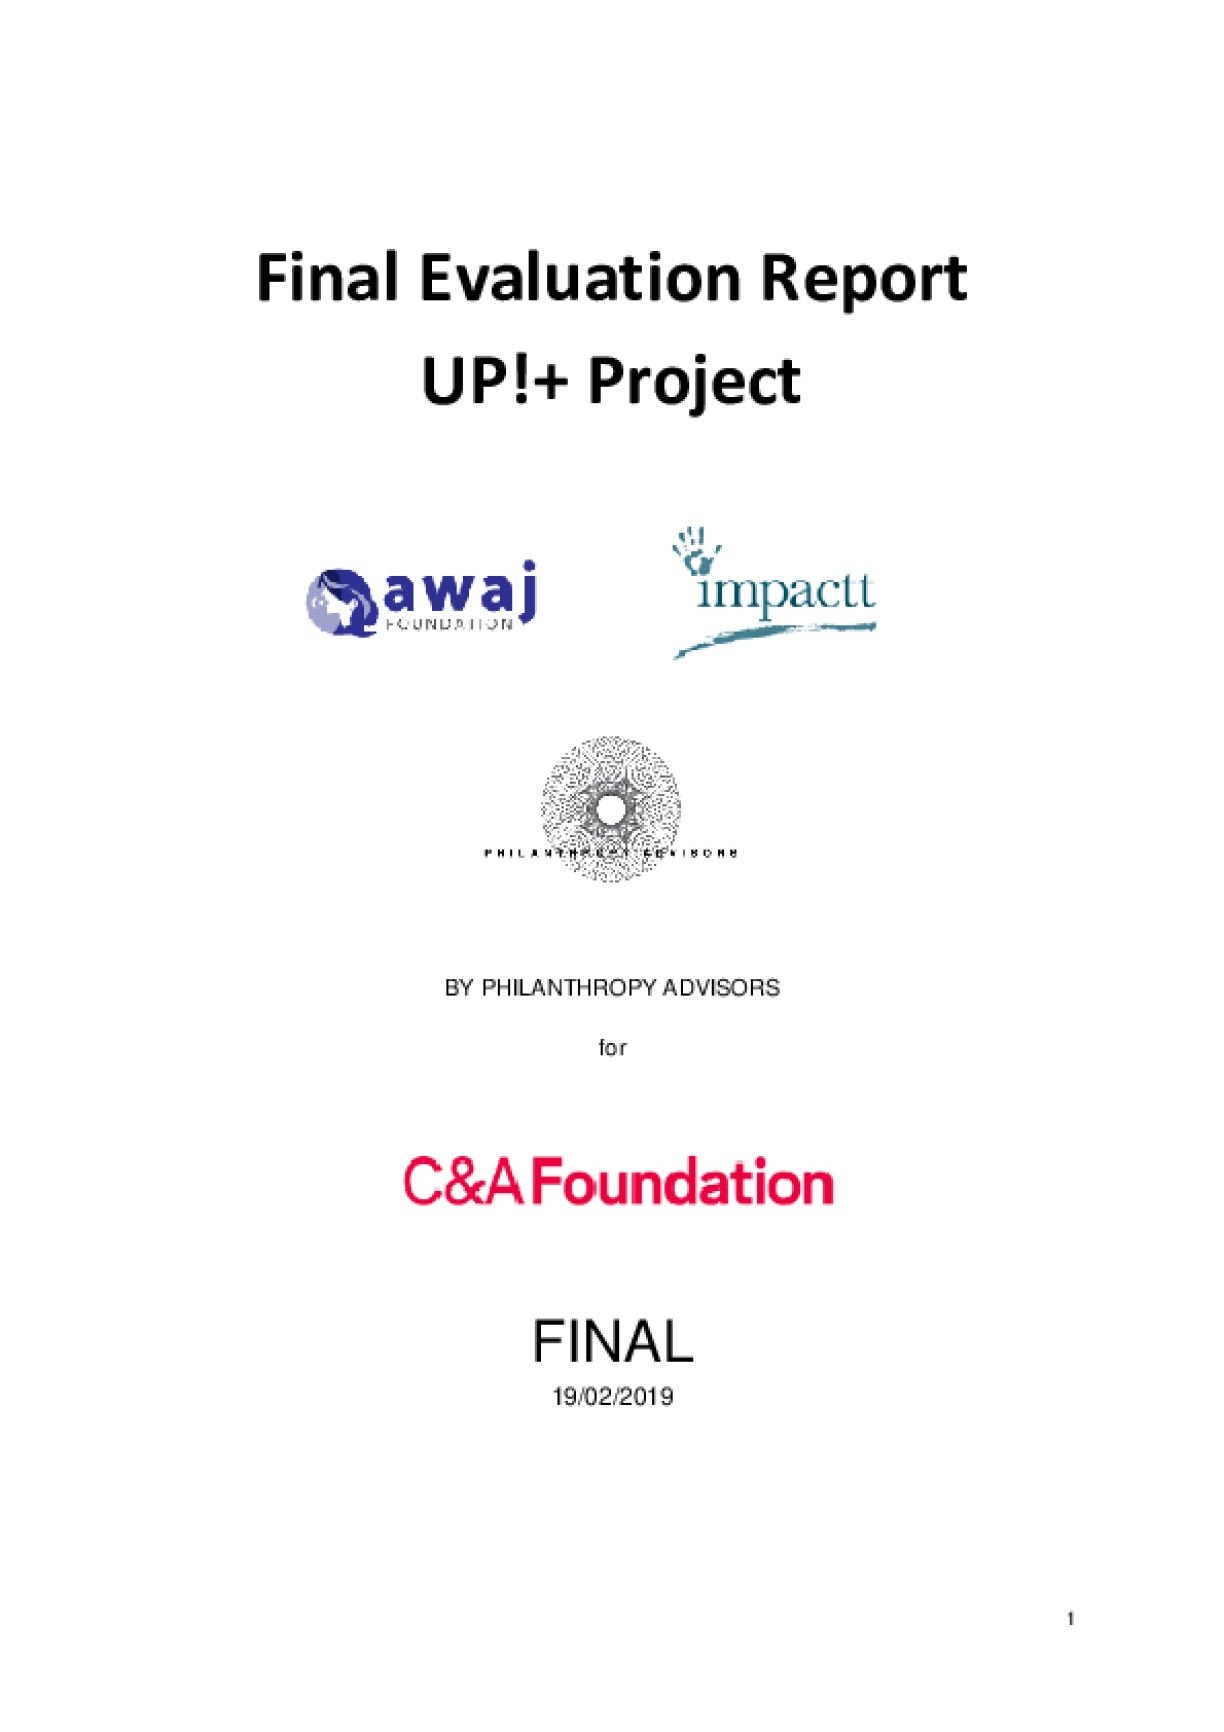 External Evaluation Report of UP! + Community-based, Worker Training Programme